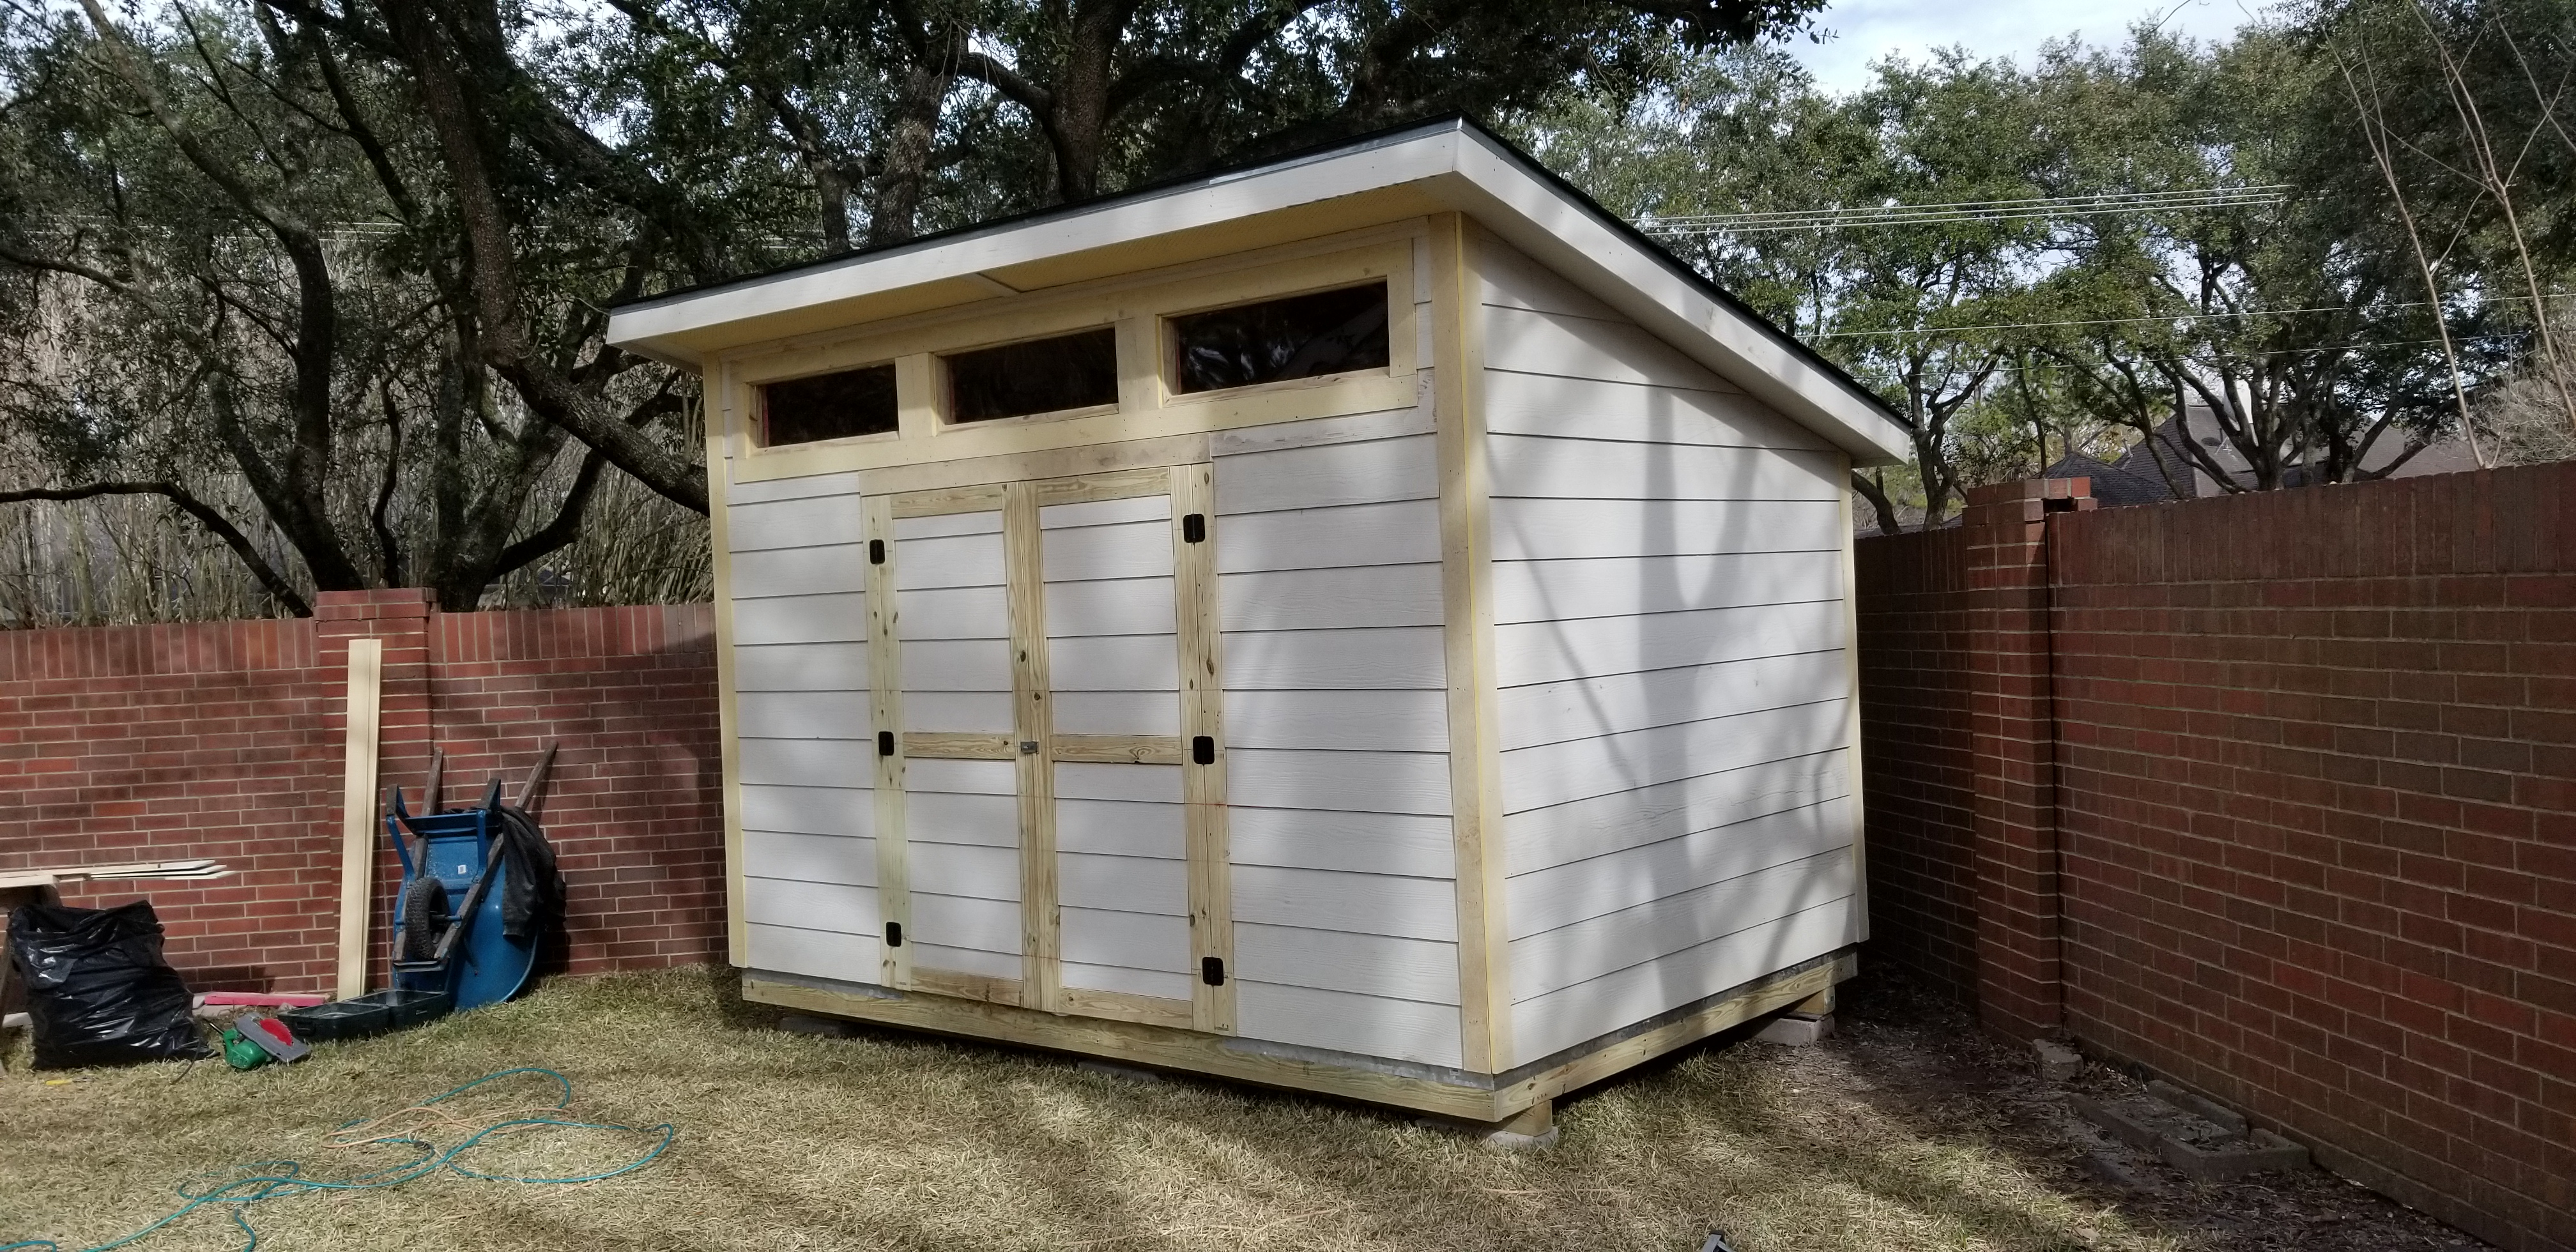 cabins usa for tx agent estate poetry in homes real sale texas